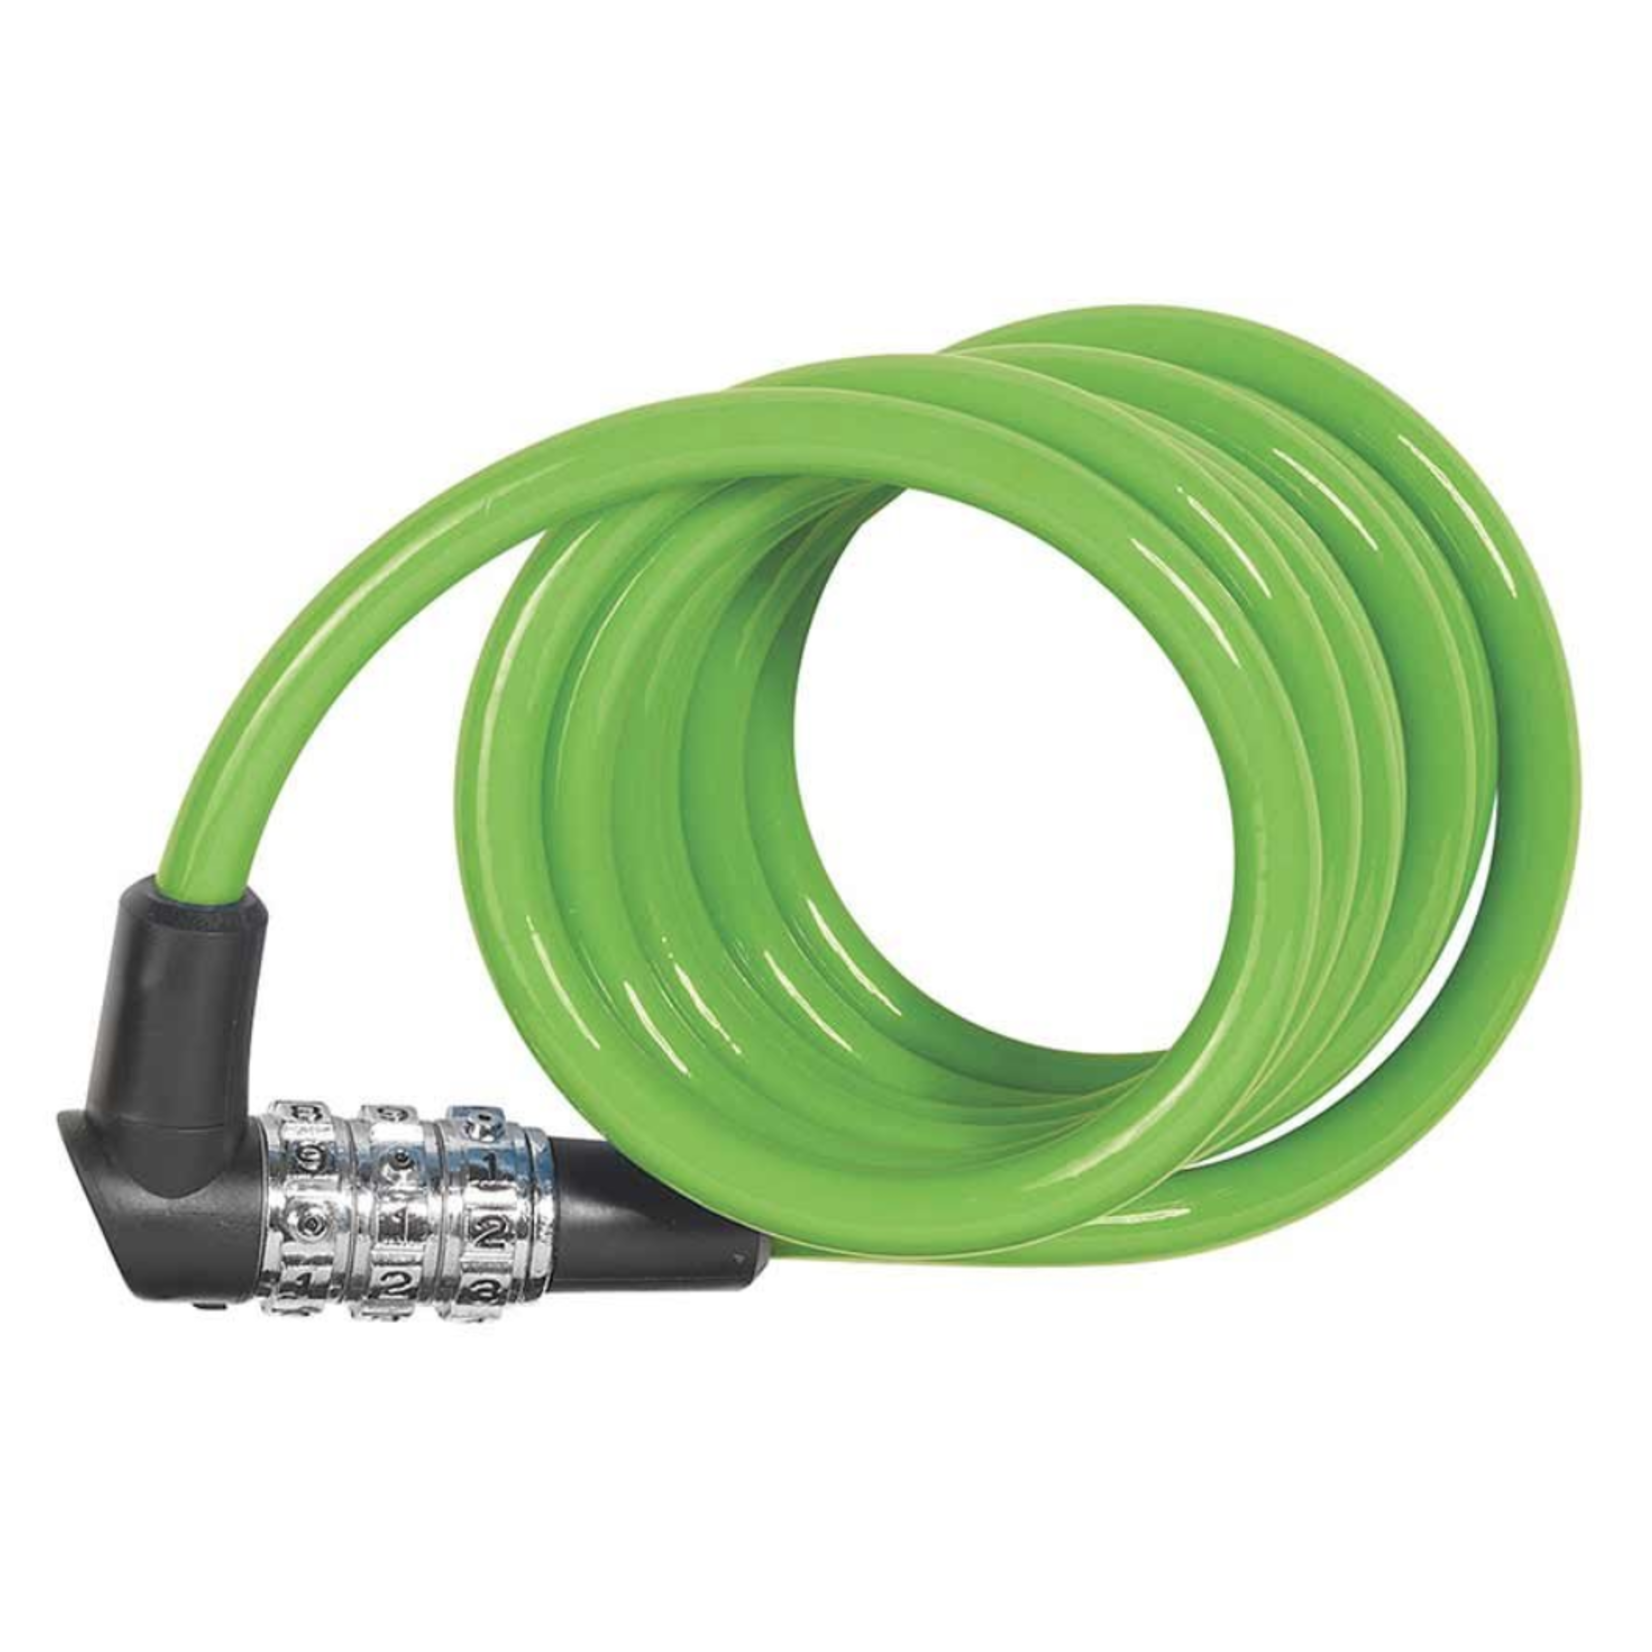 Abus Abus Kids Cable Lock